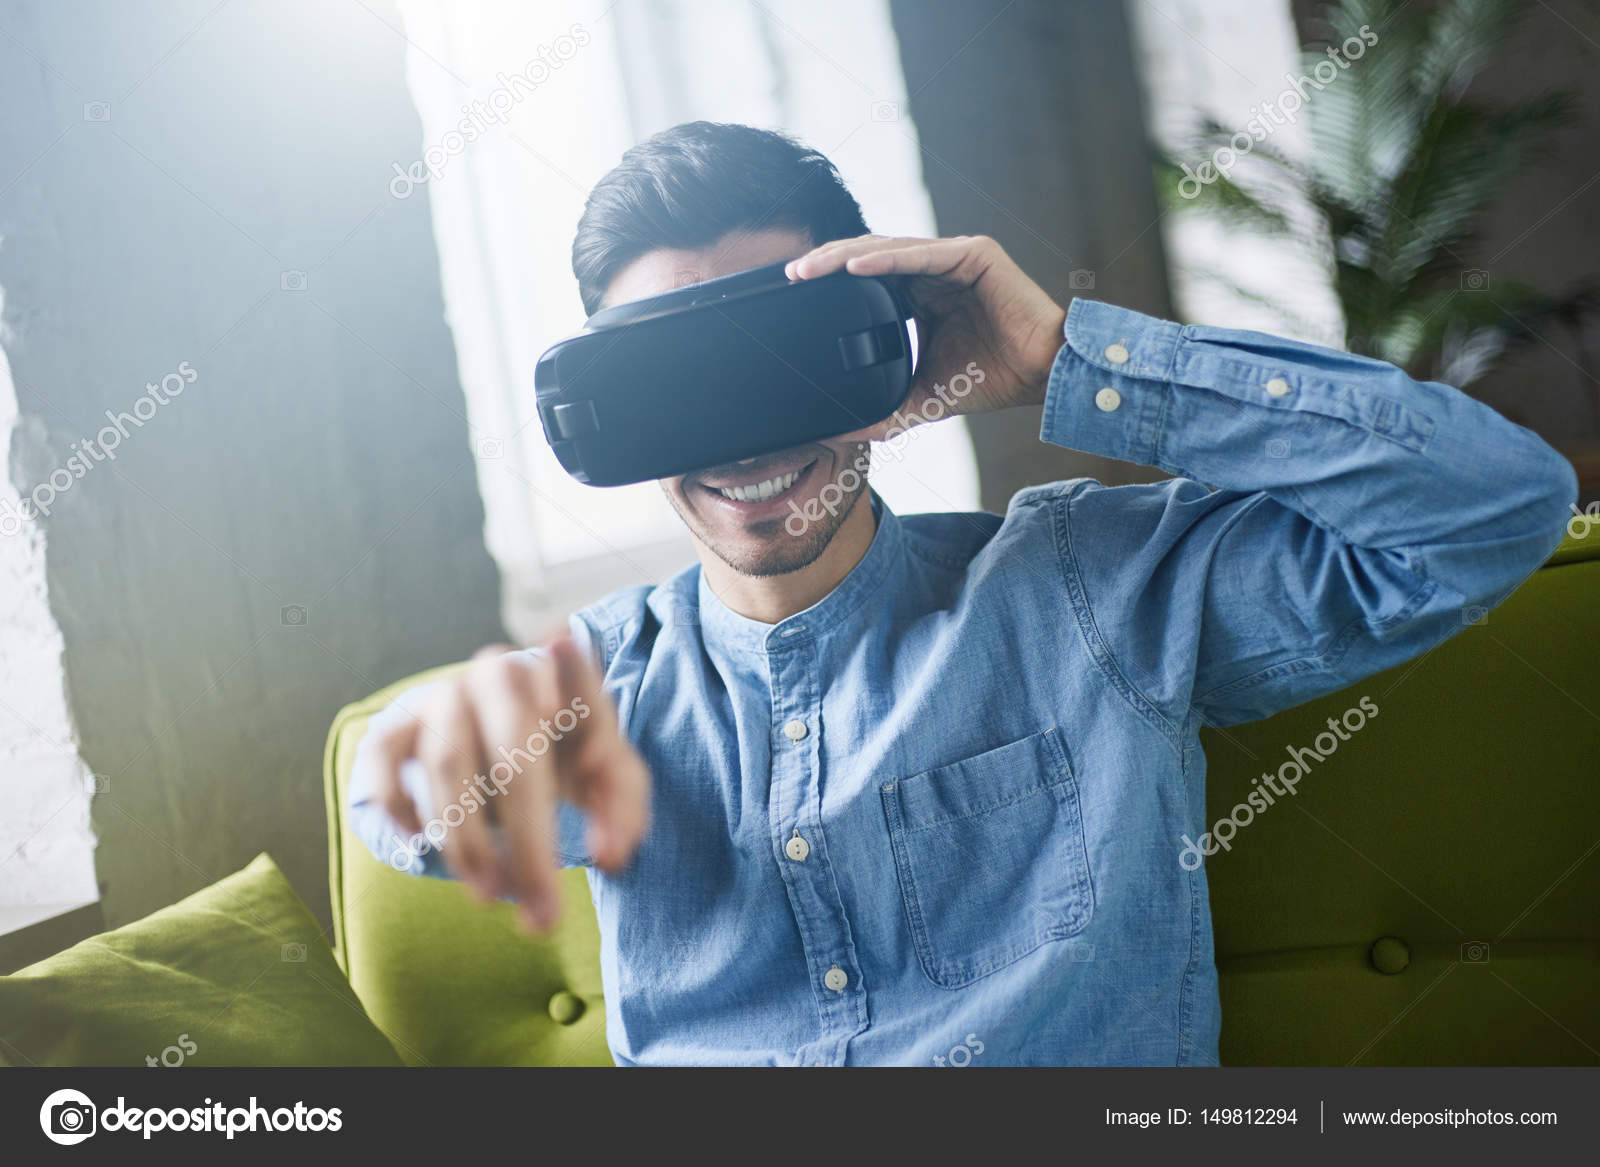 9b9ee9a54a2 VR glasses. Smiling young caucasian in blue denim shirt man in virtual  reality headset or 3d glasses pointing with finger in the air